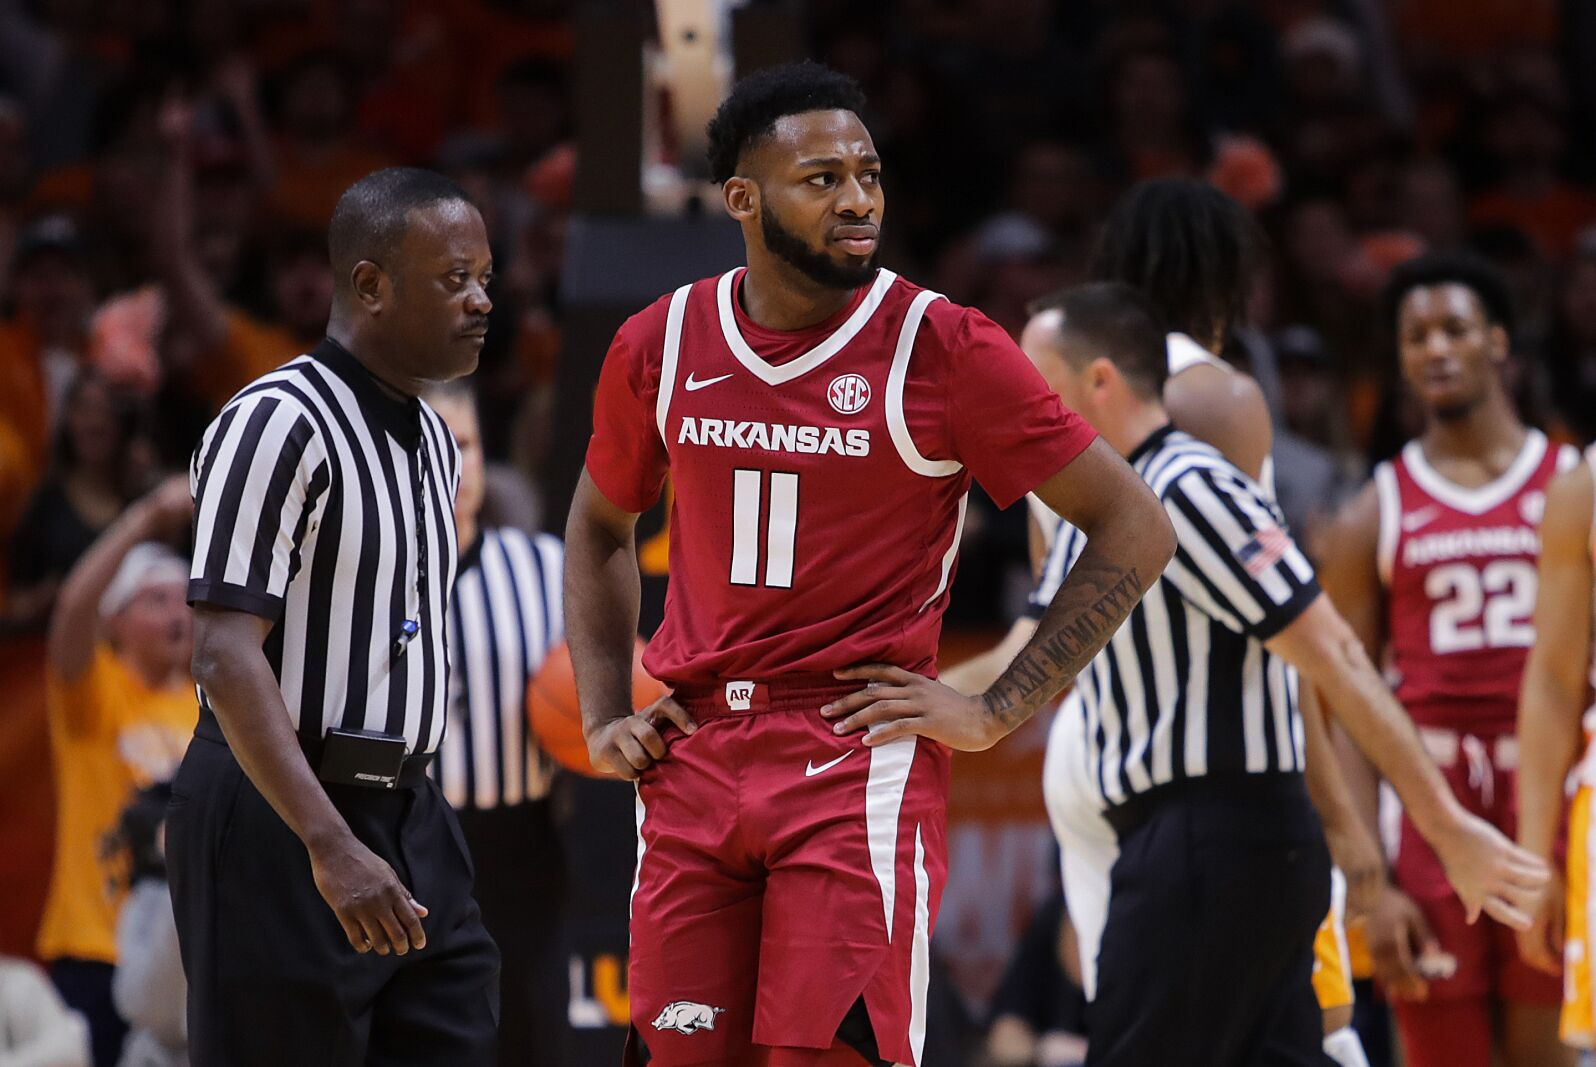 Arkansas Basketball: Ranking Hogs 2019-20 non-conference opponents